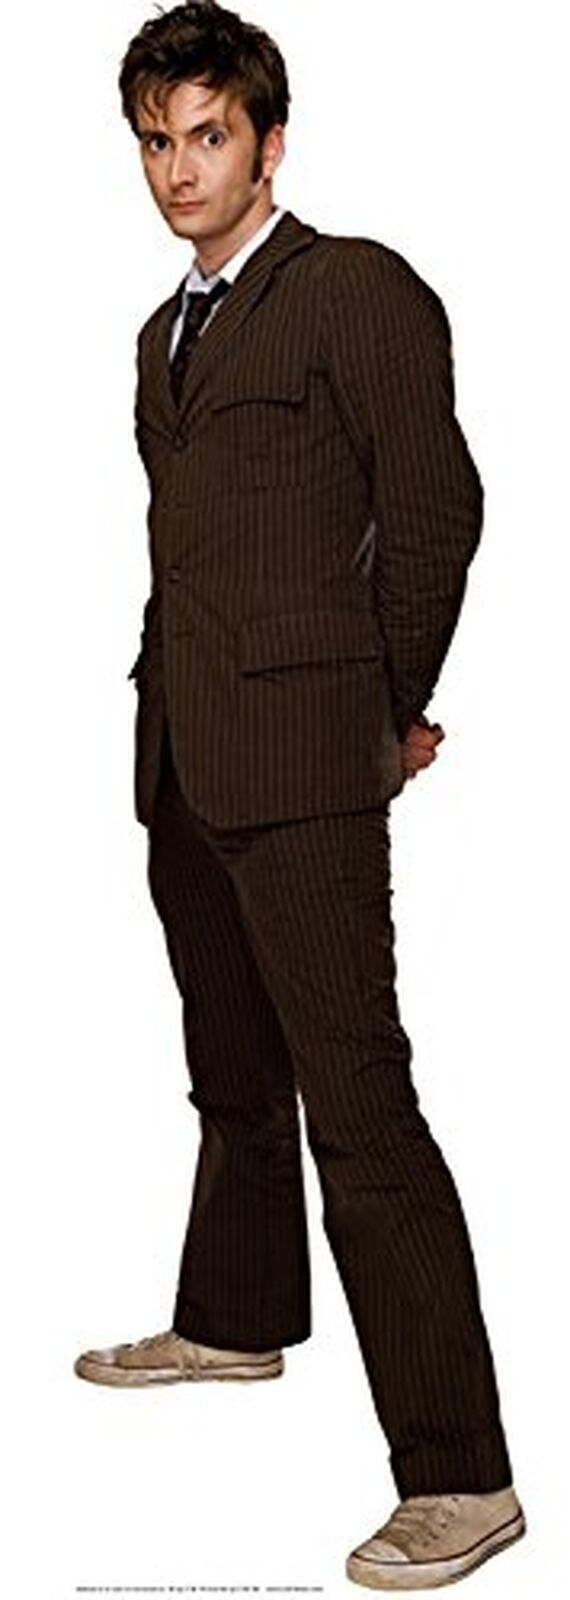 STAR CUTOUTS SC125 Official Tenth Doctor Who David Tennant Suit (Braun) lifes...